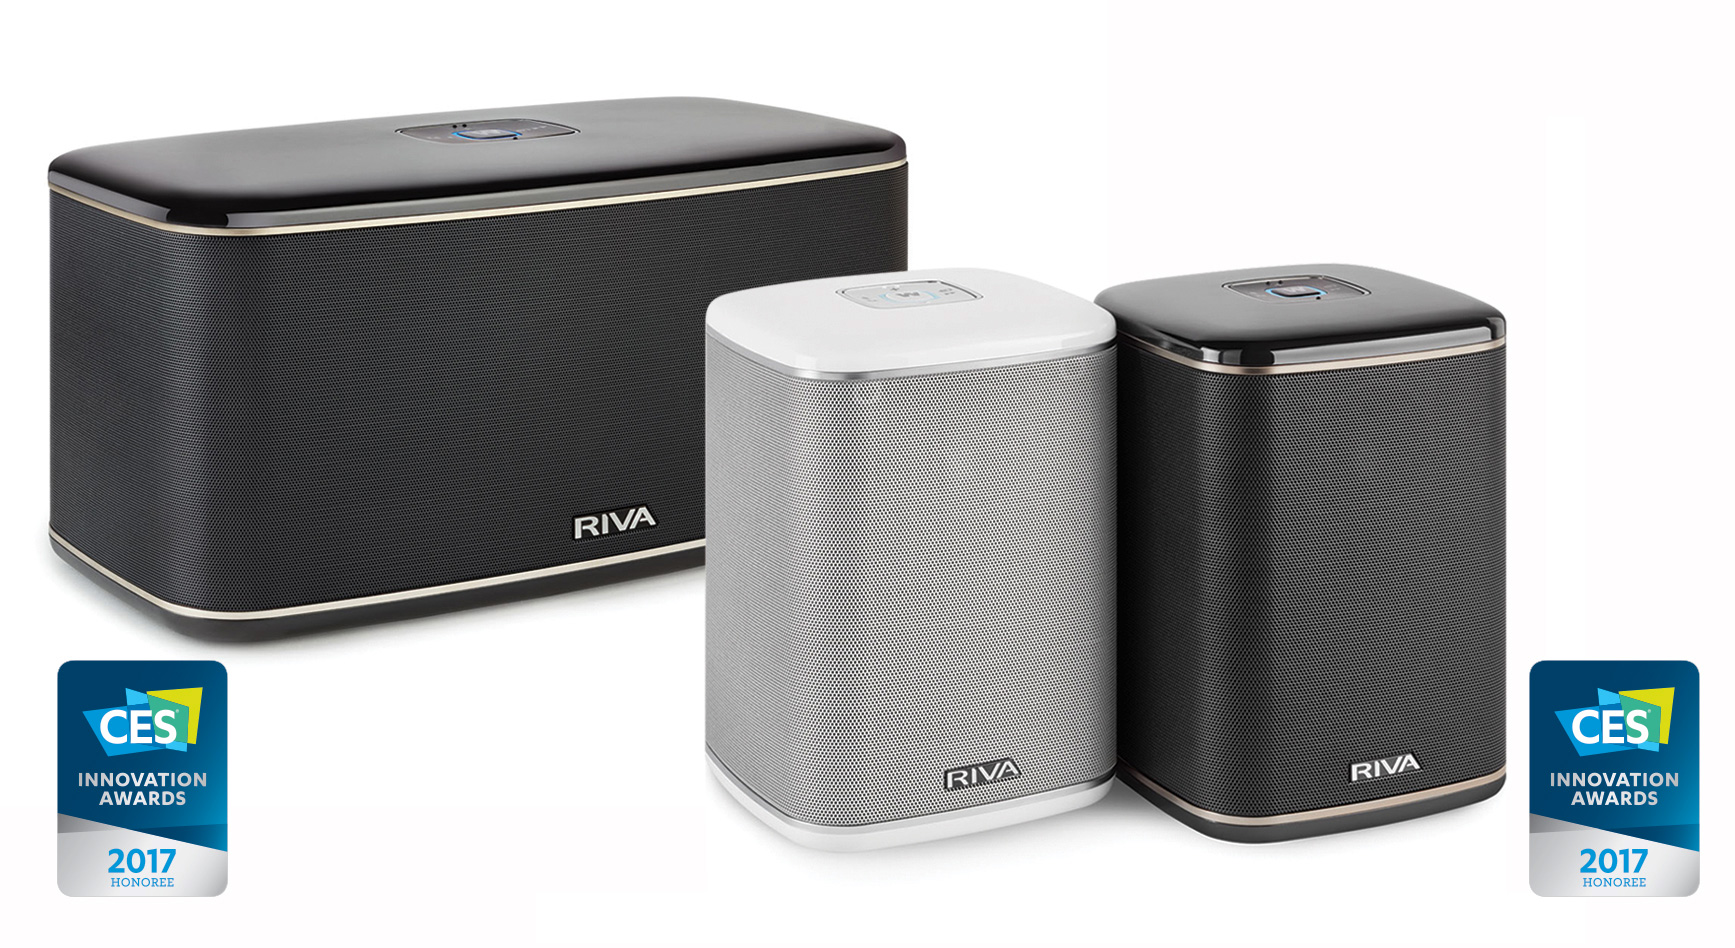 Riva-speakers-and-CES-award